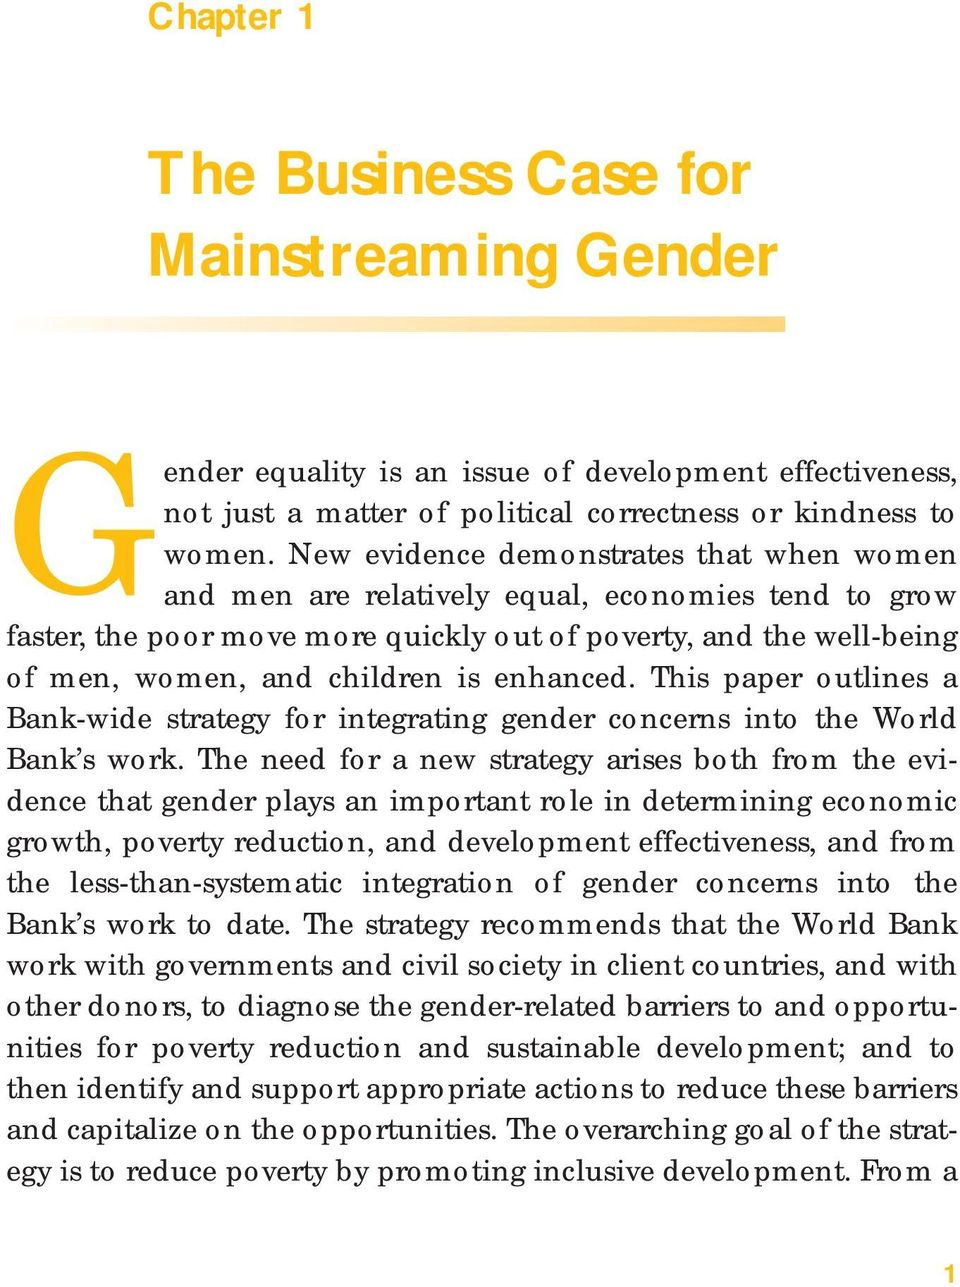 enhanced. This paper outlines a Bank-wide strategy for integrating gender concerns into the World Bank s work.